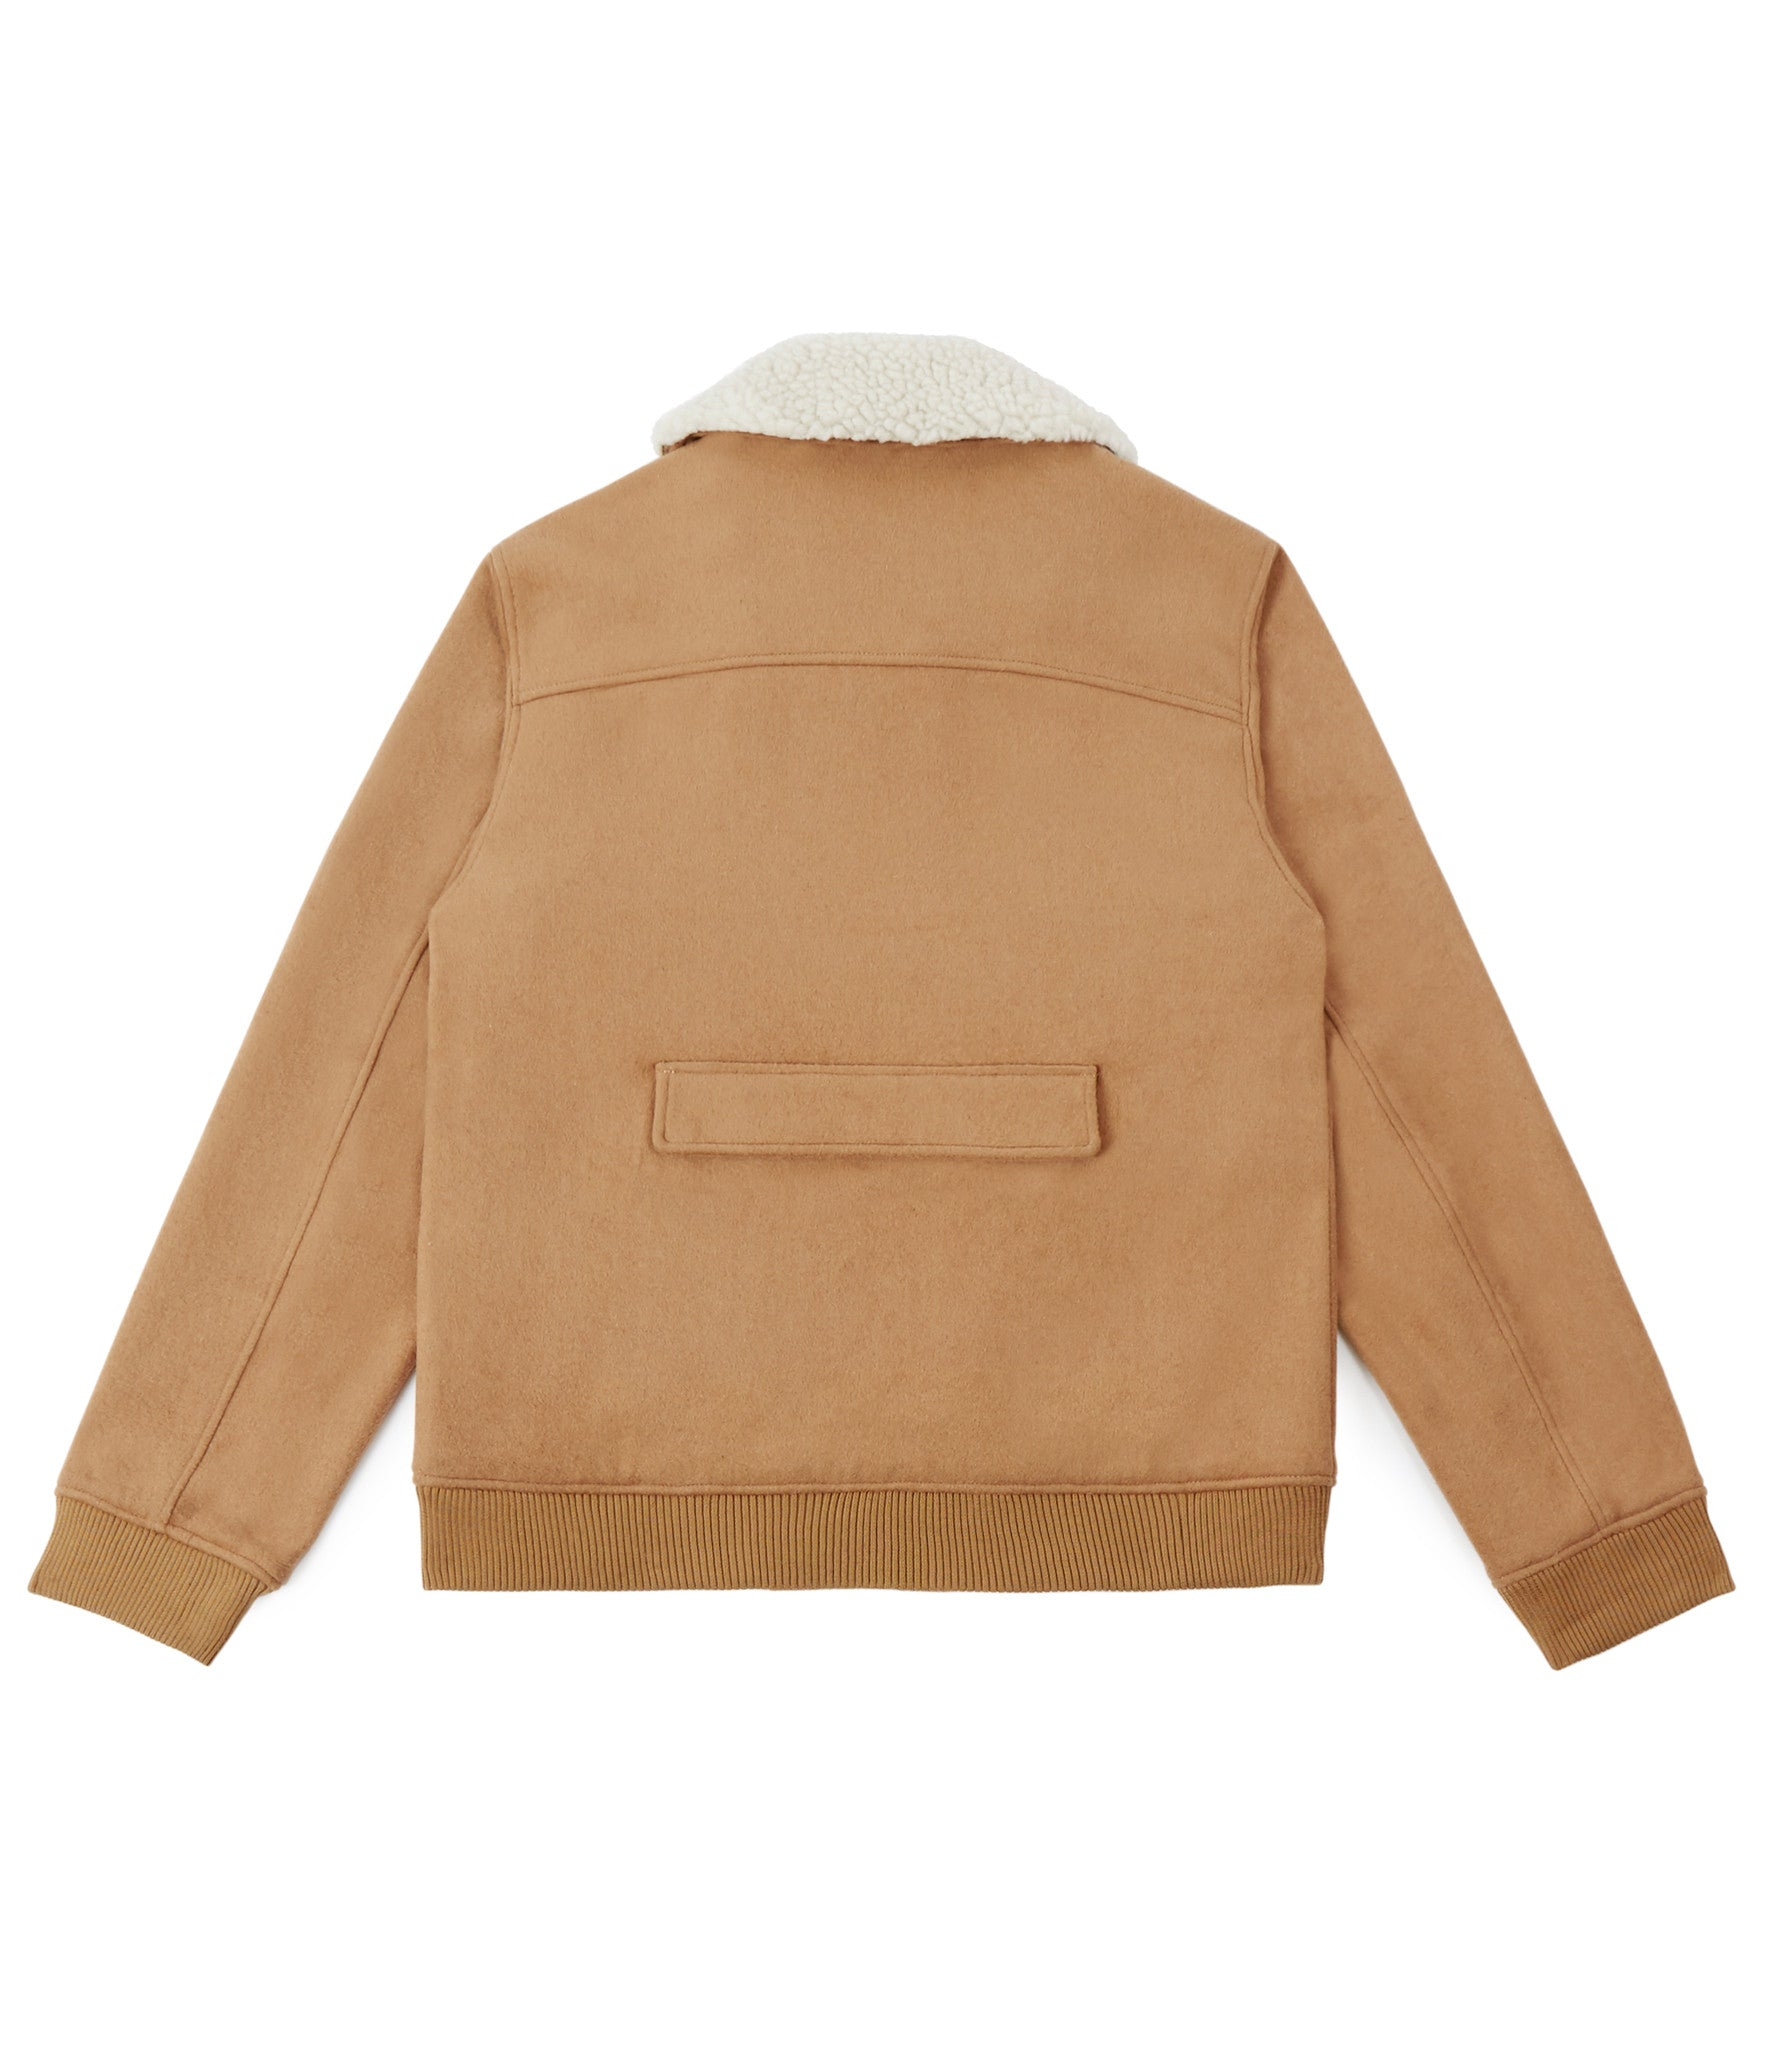 BM20 Shearling-Trimmed Wool Jacket - Camel - underated london - underatedco - 4